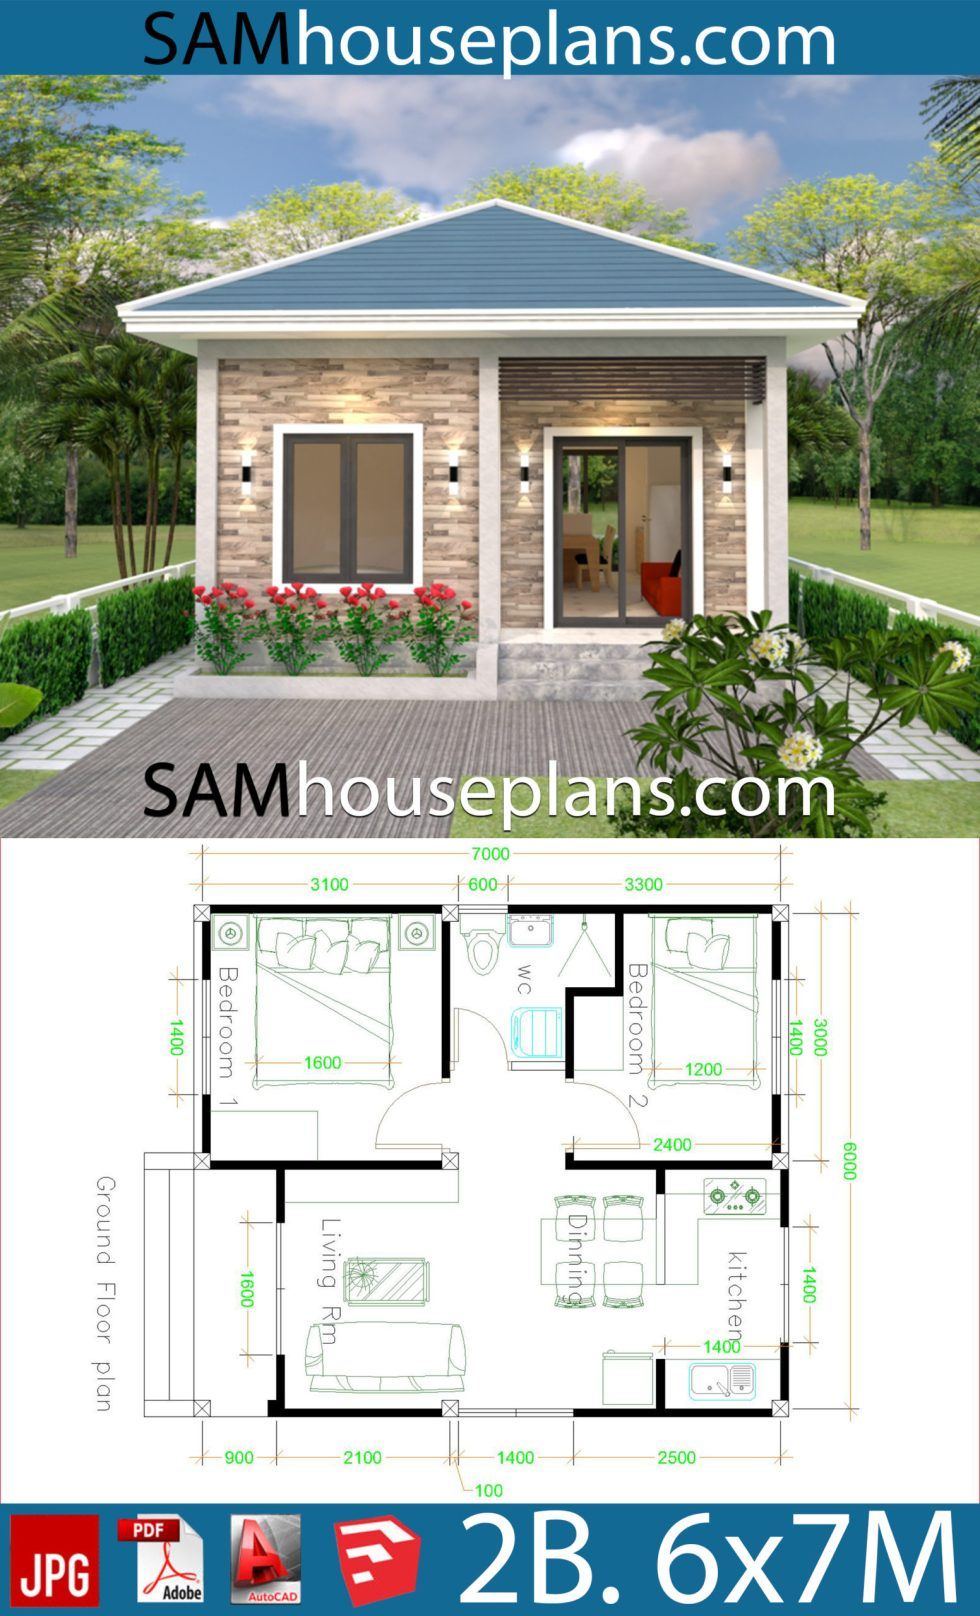 Simple House Design 6x7 With 2 Bedrooms Hip Roof Samhouseplans